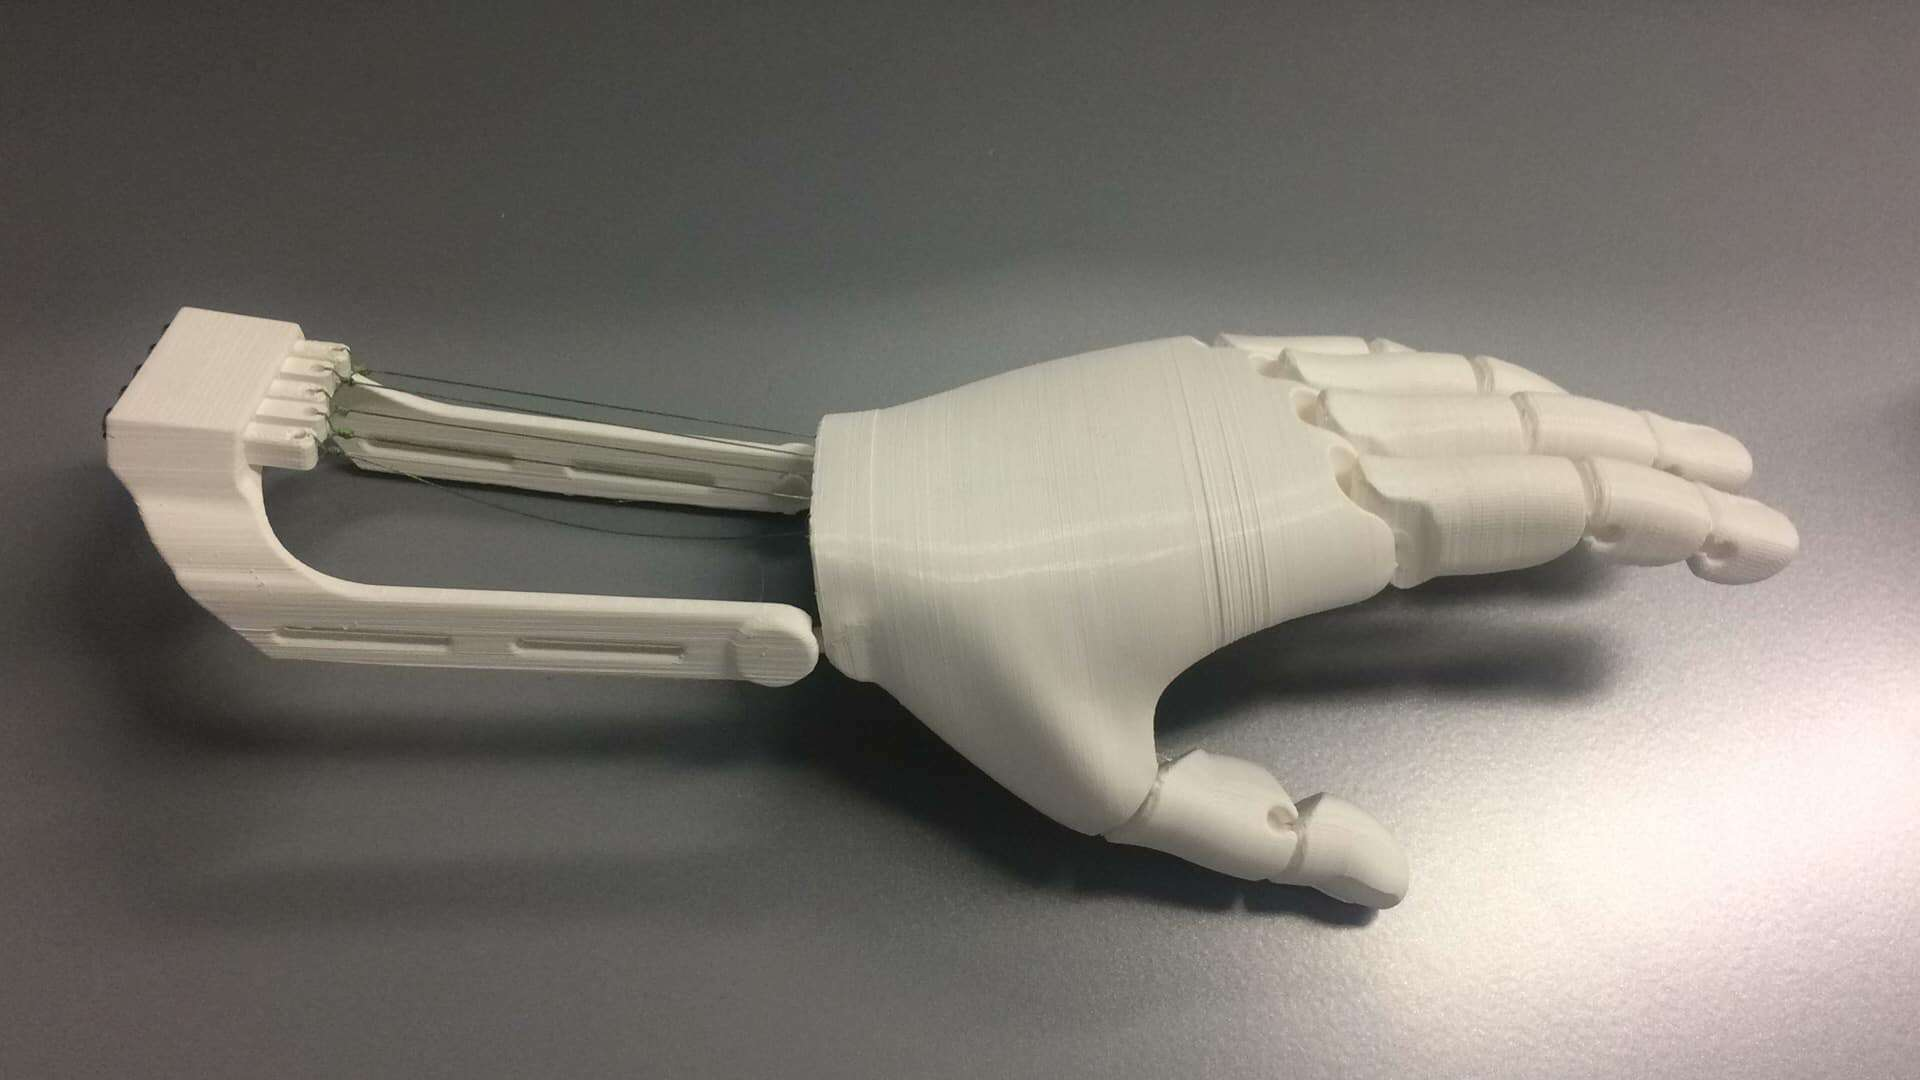 Bringing 3D-Printed Prosthetic Hands to Third-World Countries